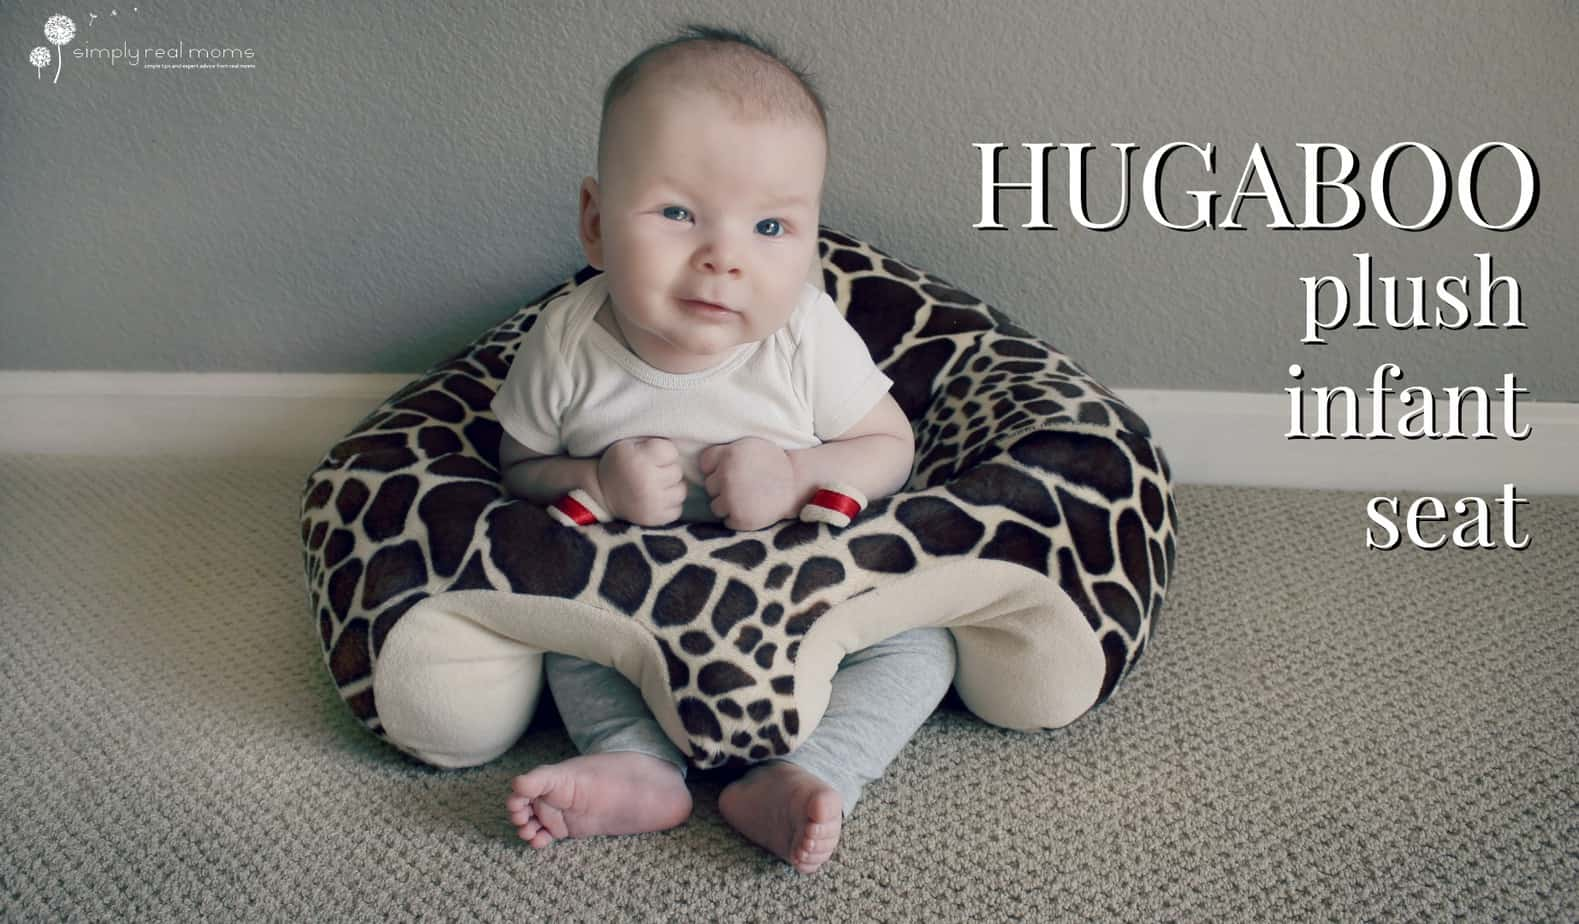 Hugaboo Plush Infant Seat 6